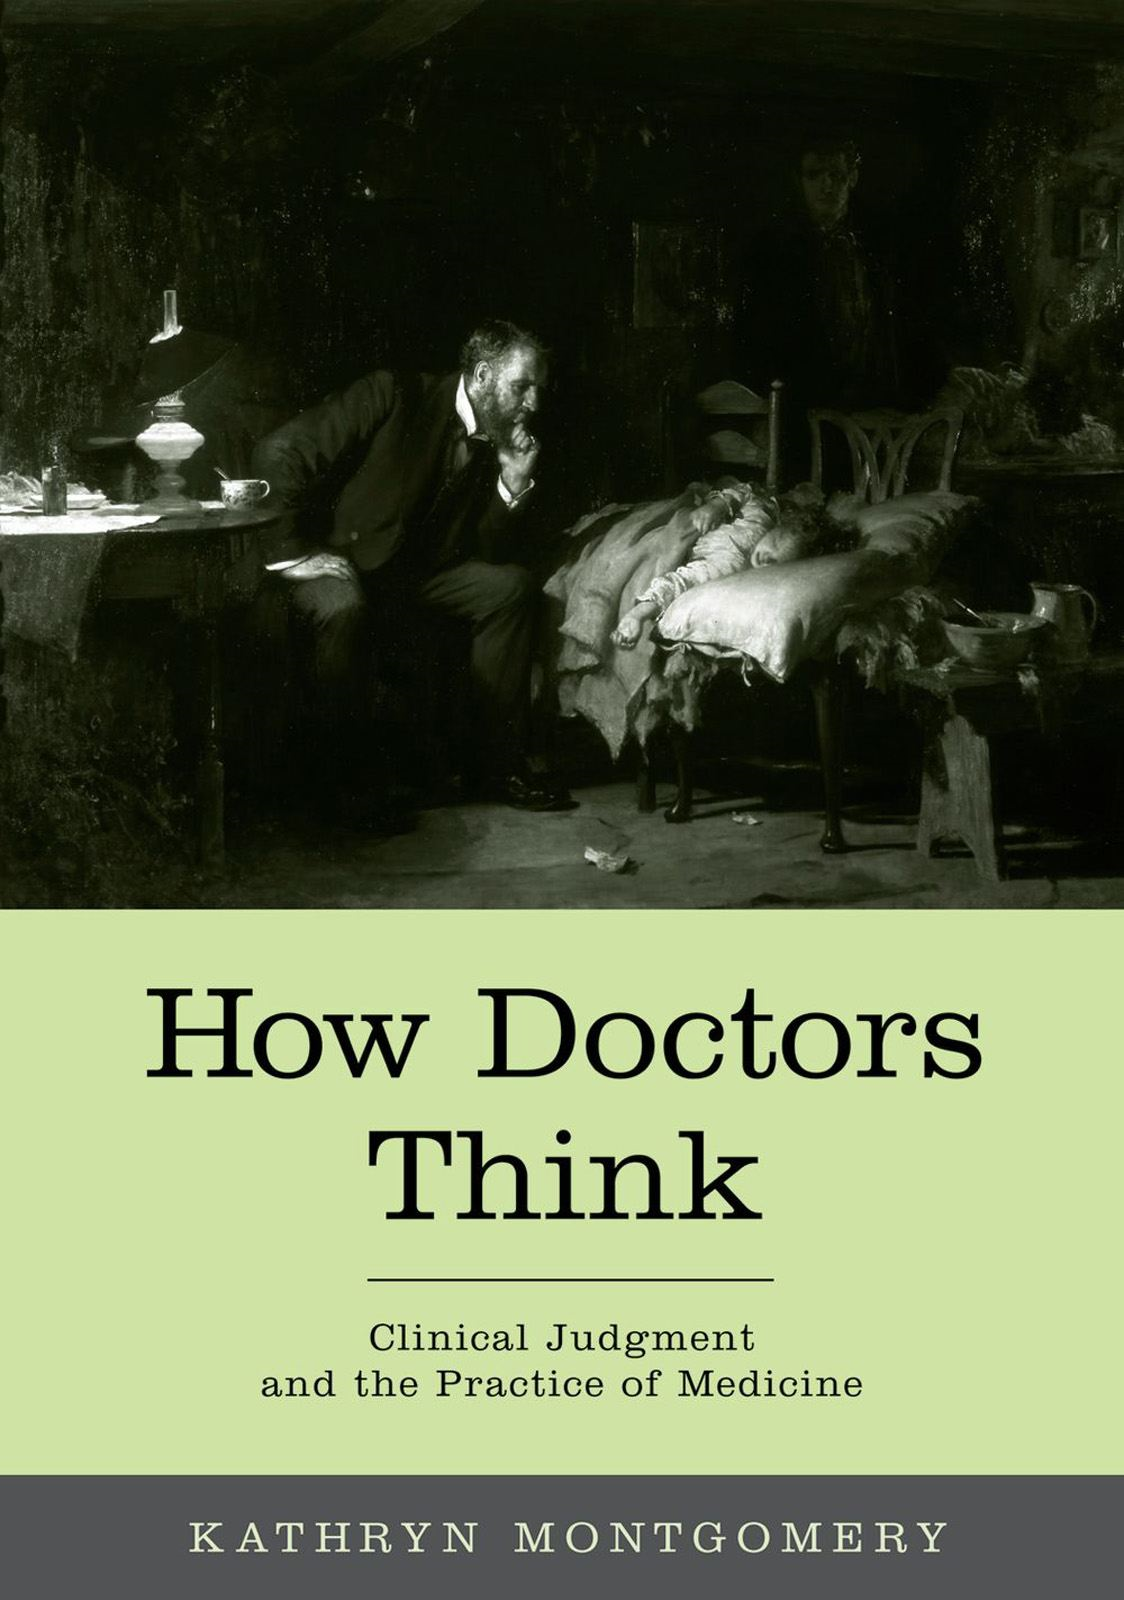 How Doctors Think : Clinical Judgment and the Practice of Medicine